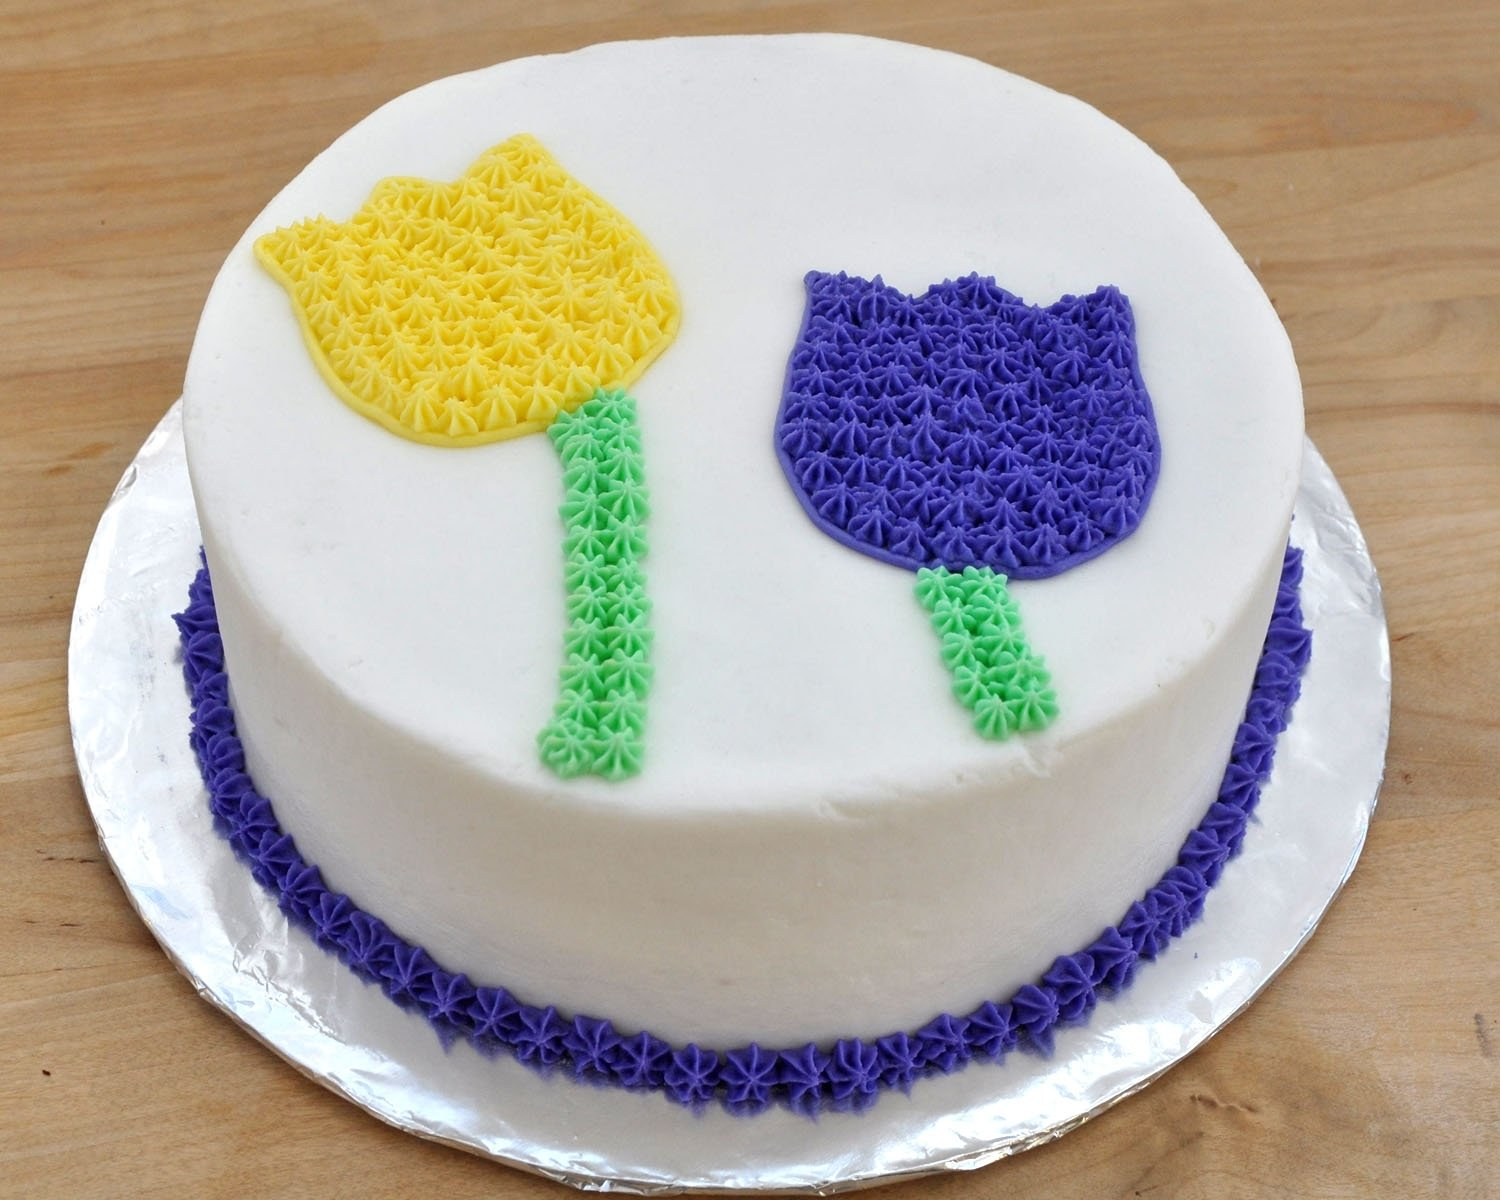 10 Attractive Easy Cake Decorating Ideas For Beginners & 10 Stylish Easy Cake Decorating Ideas For Beginners